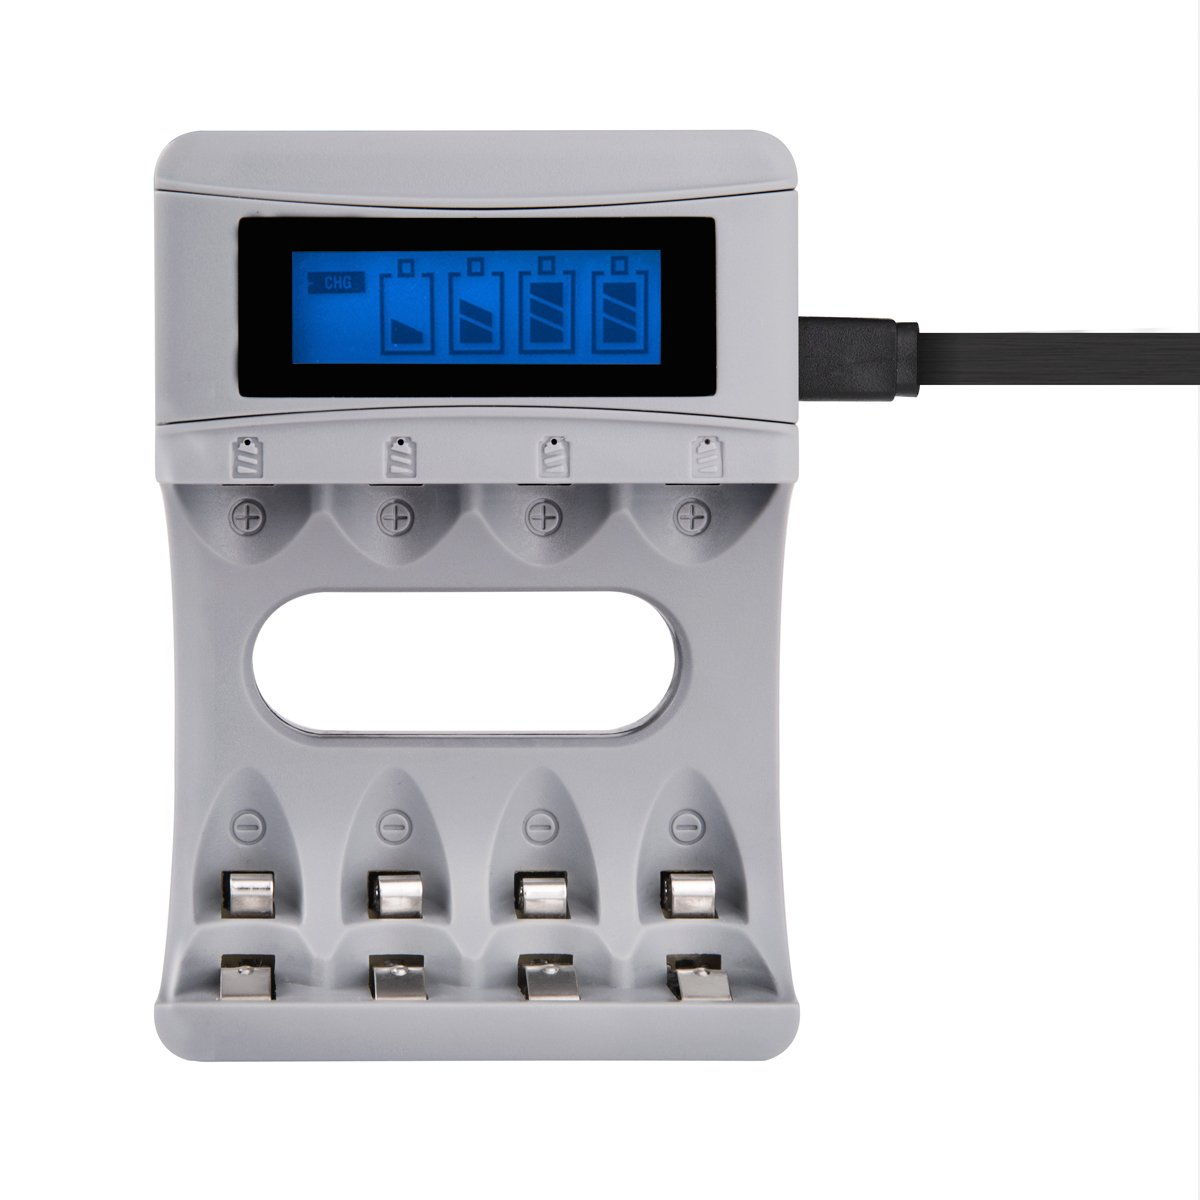 Tycipy Battery 4 Bay Usb Charger For Ni Mh Cd Aa Aaa Rechargeable 12v Nicad 200ma H Product Details